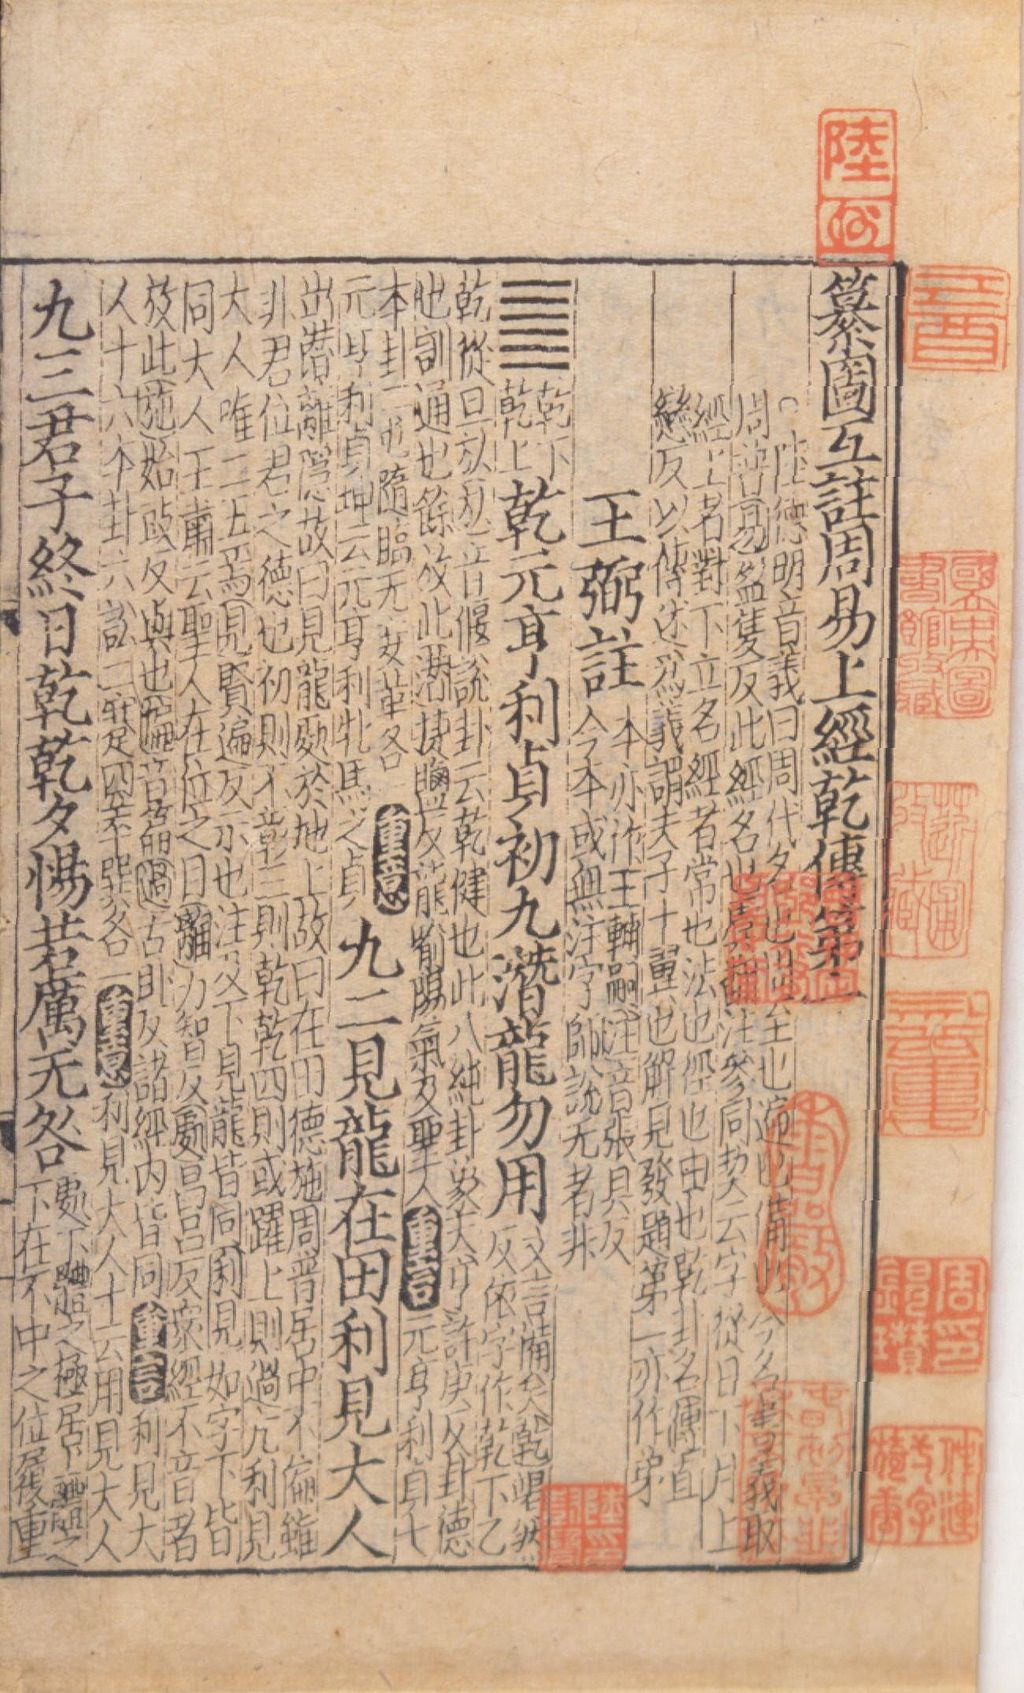 A page from a Song Dynasty edition of the I Ching